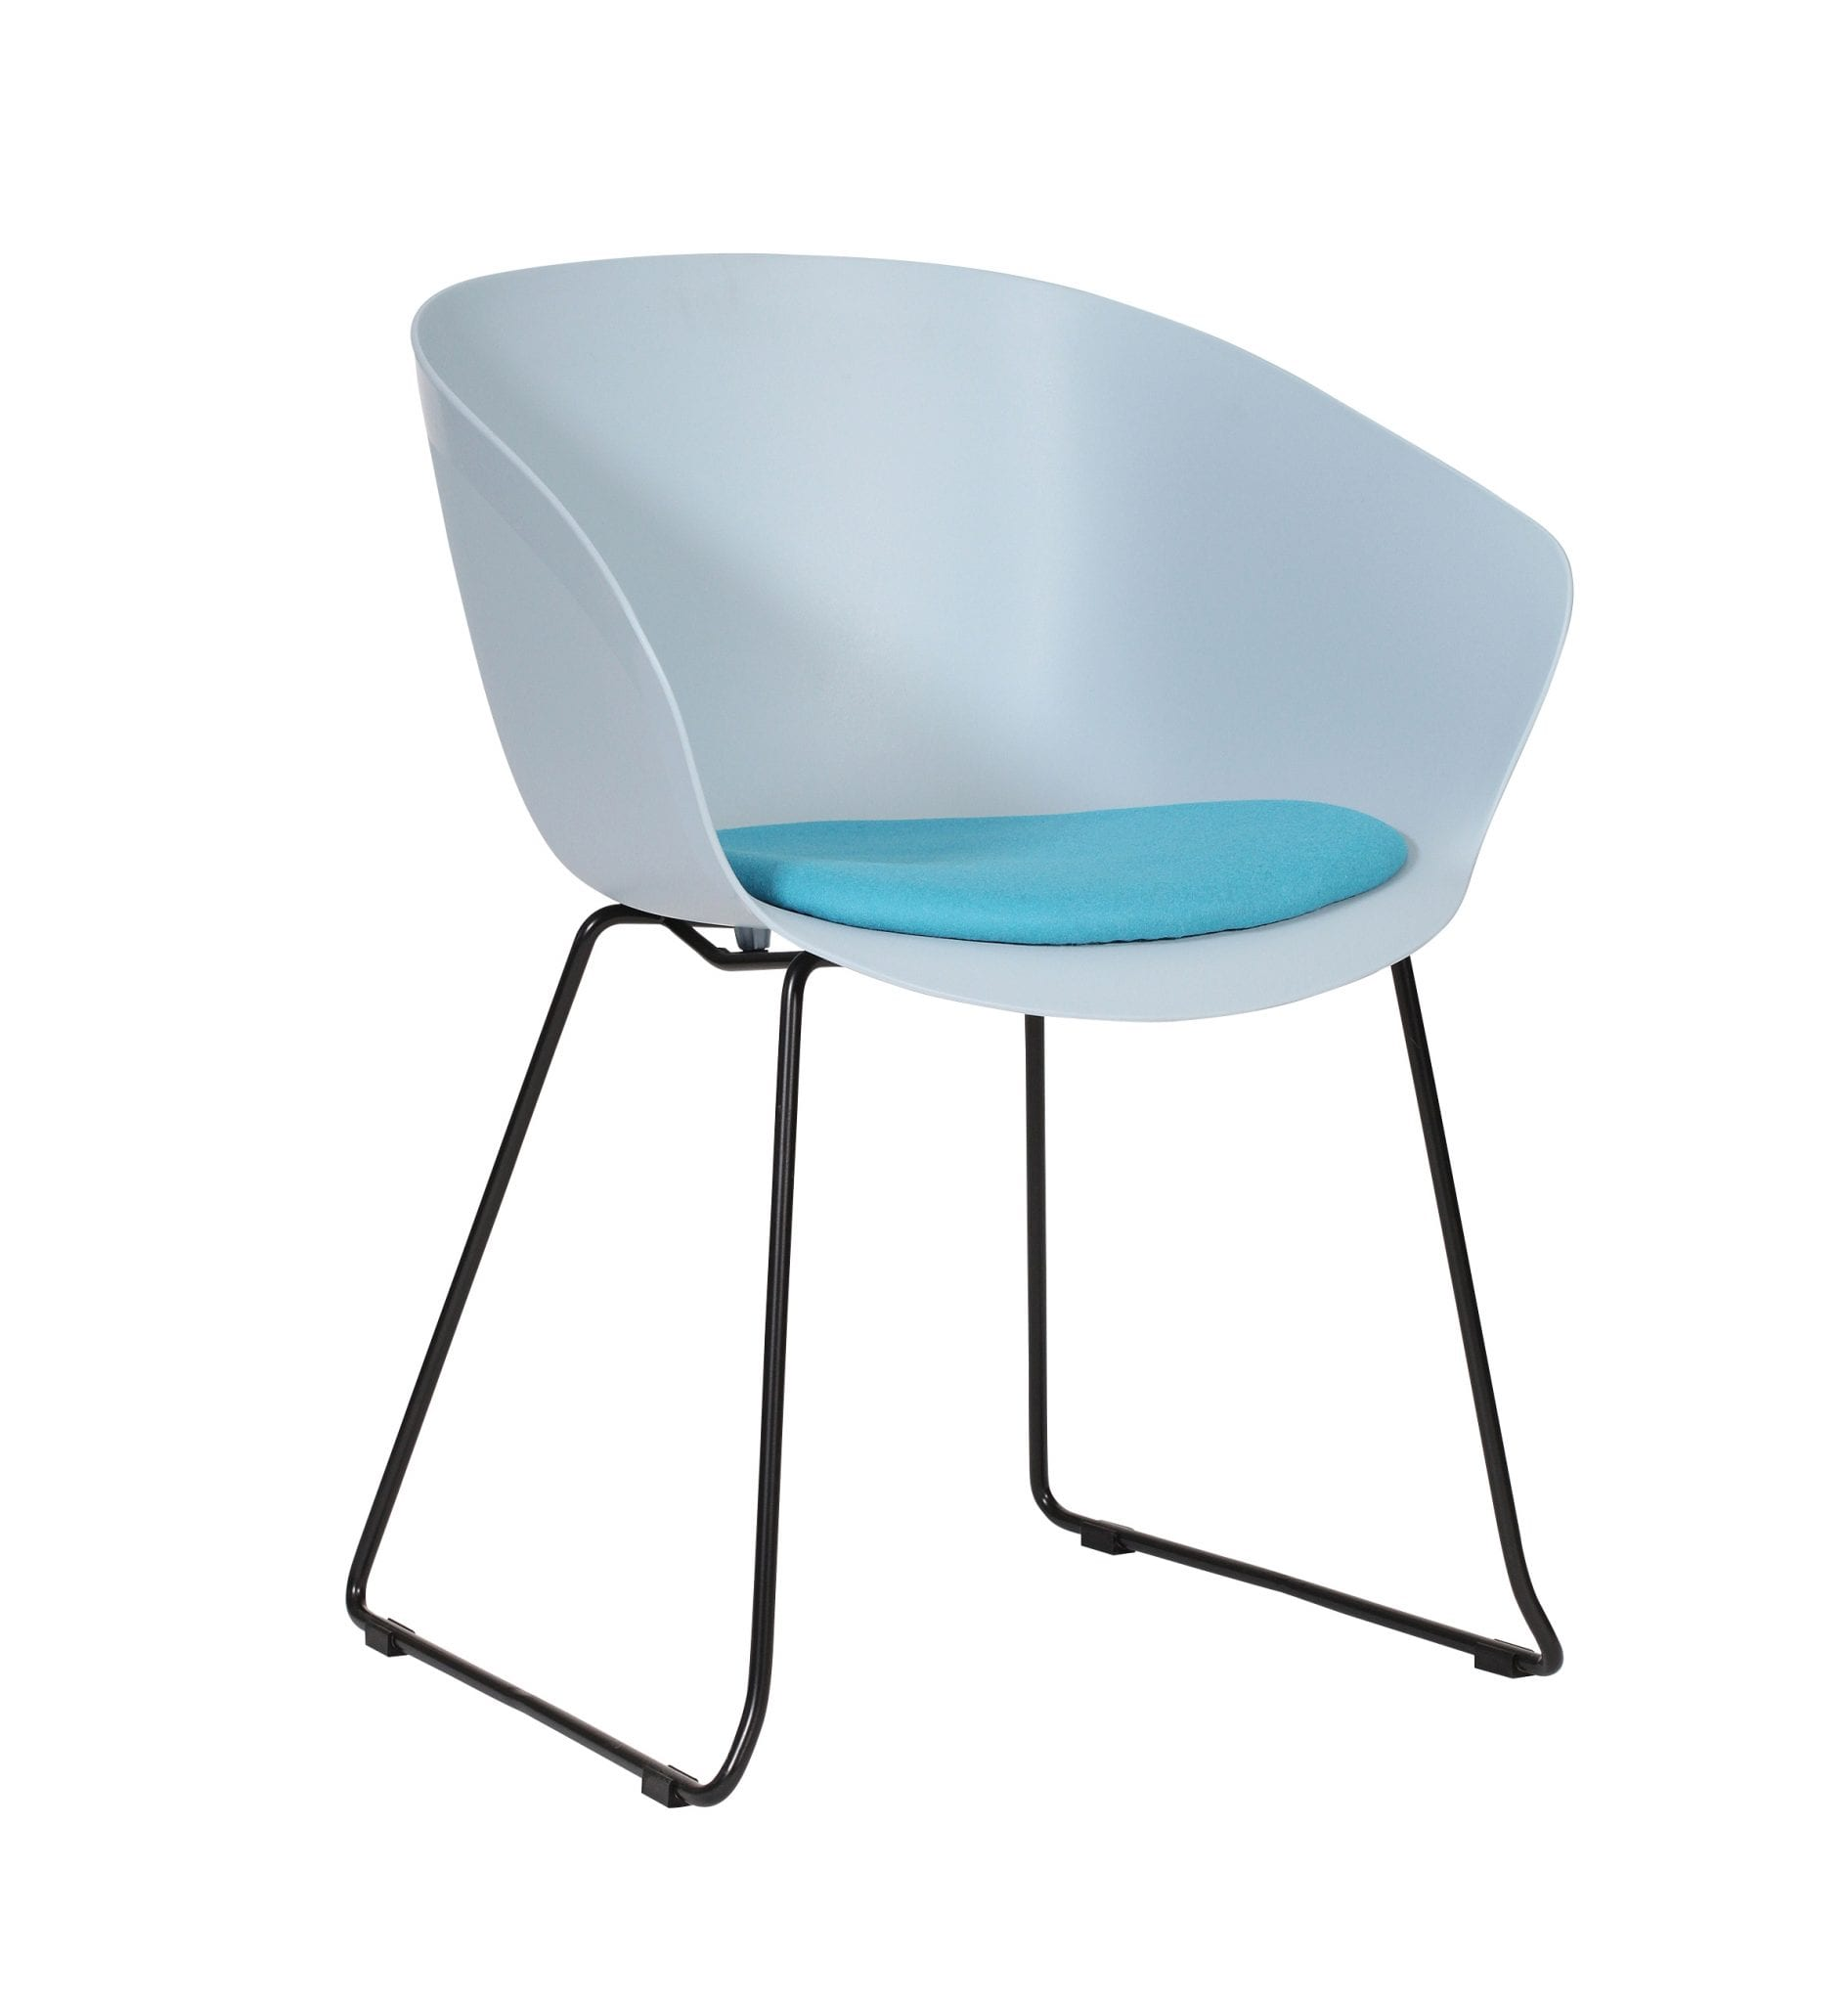 SO20 - Scoot range - multipurpose plastic armchair with upholstered seat – from Summit Chairs